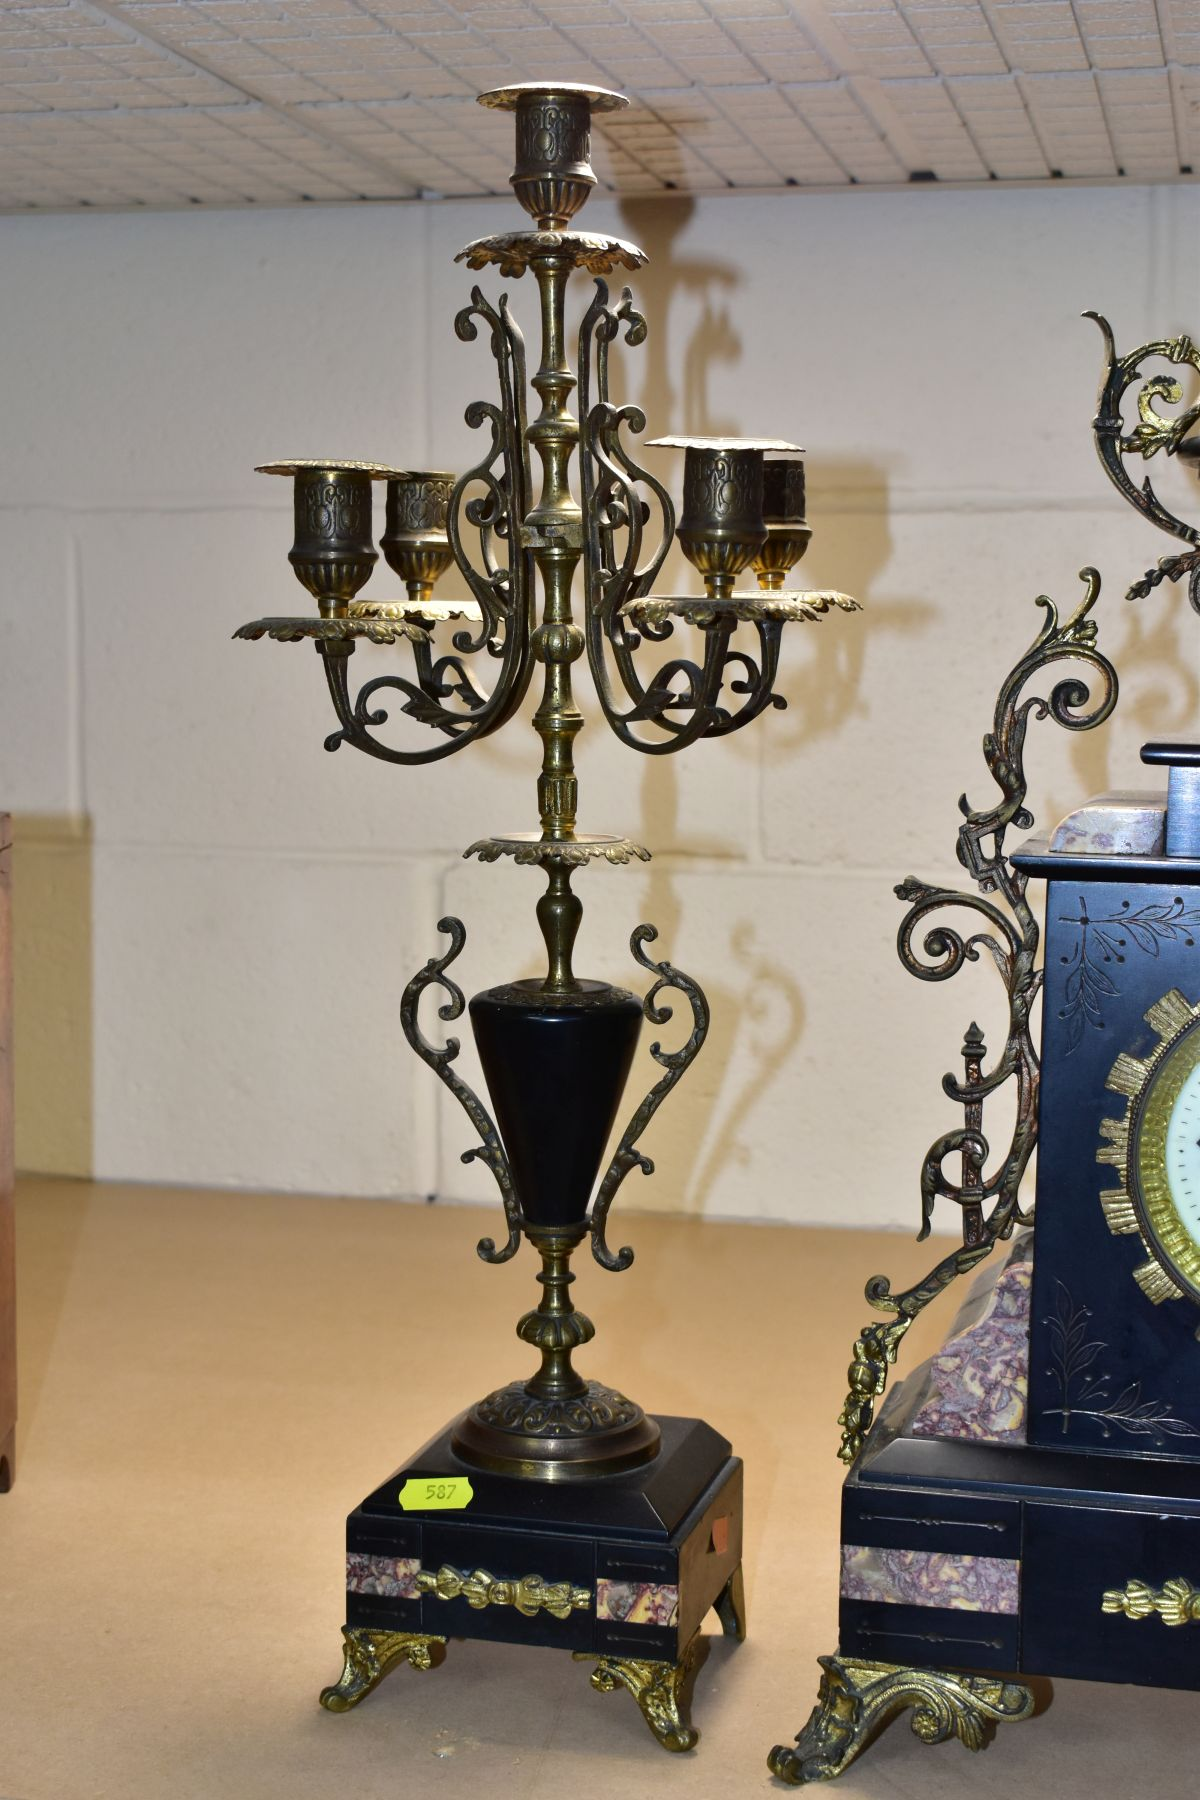 A LATE 19TH CENTURY BLACK SLATE, MARBLE AND GILT METAL CLOCK GARNITURE, the clock with urn shaped - Image 6 of 13